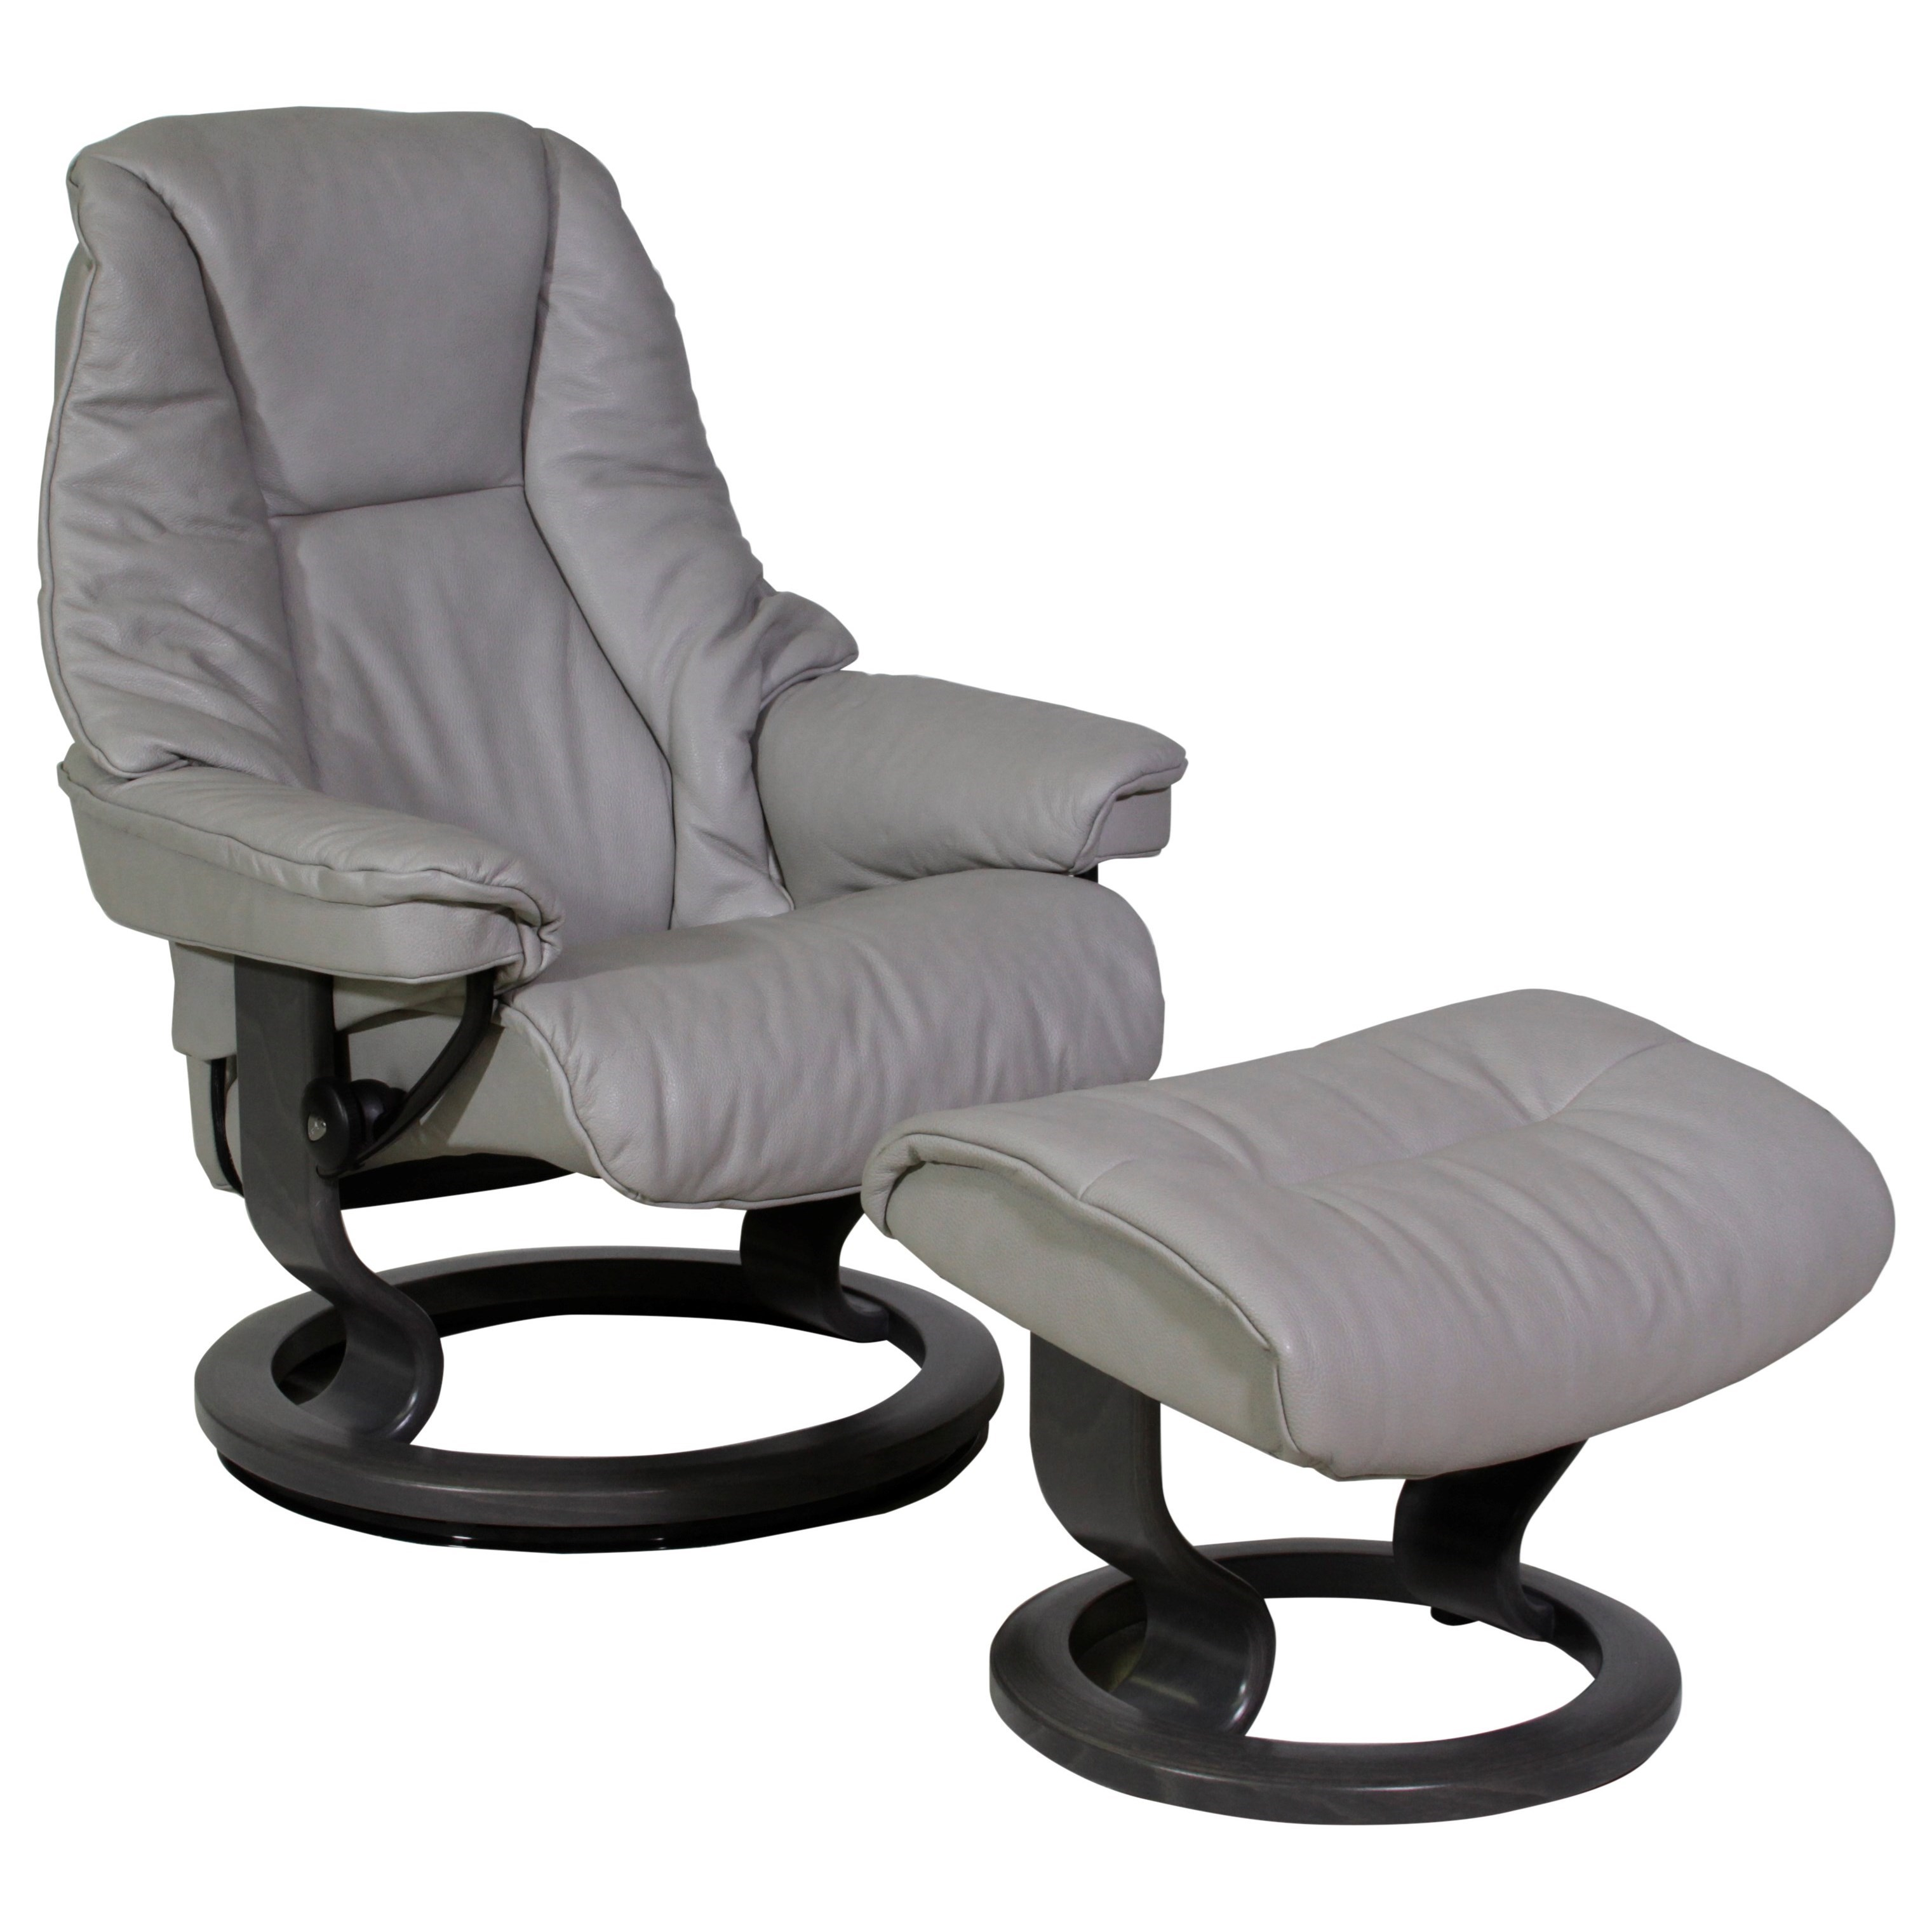 Stressless Live Small Stressless Chair & Ottoman - Item Number: 13180150912508